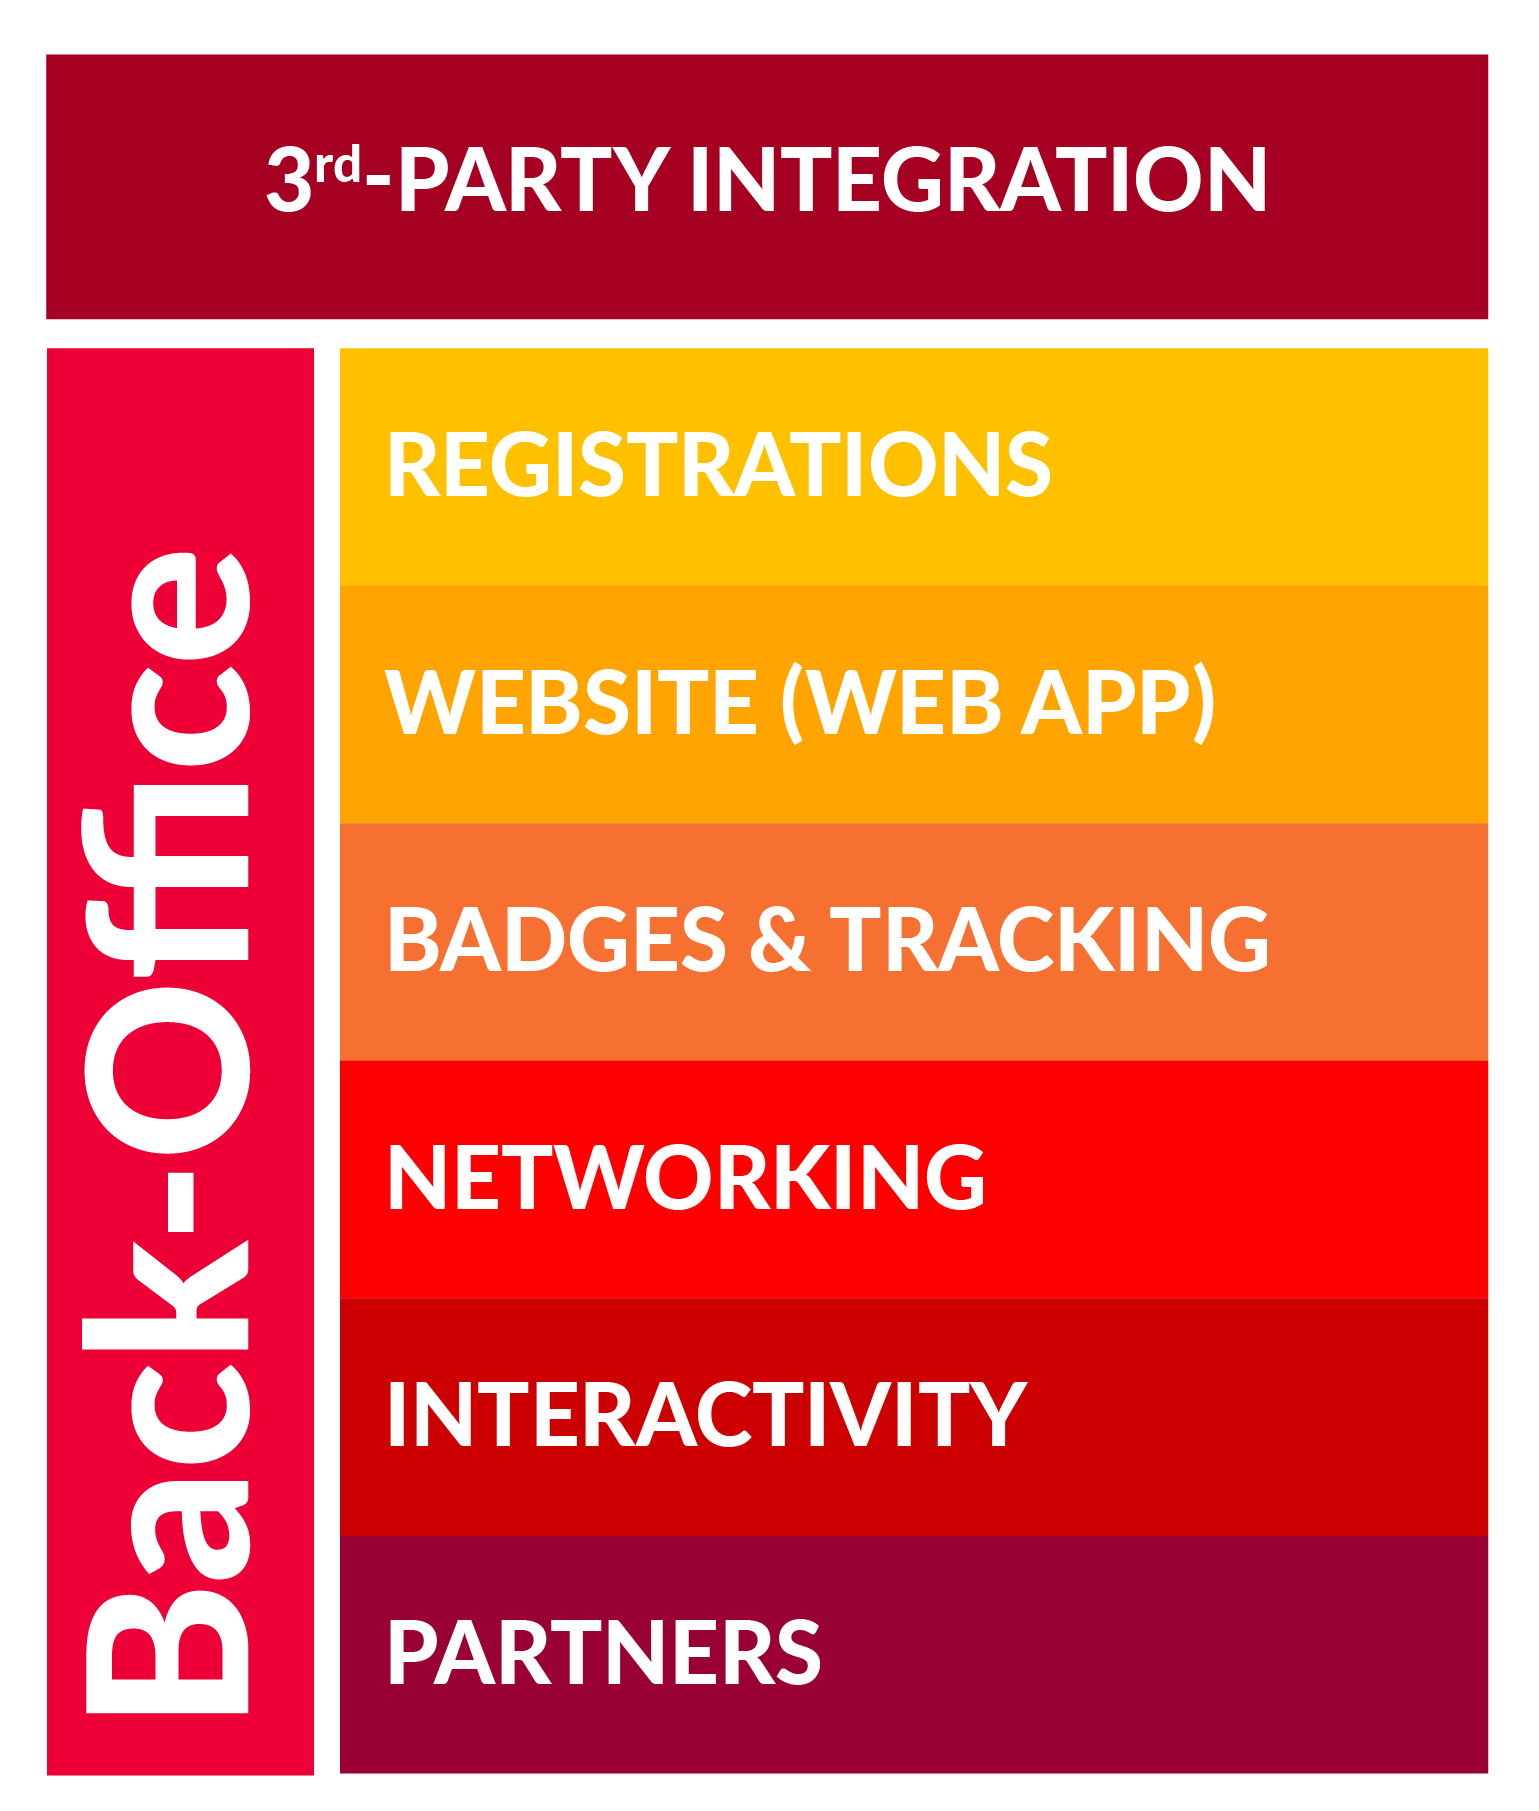 Registration, web app, badges, tracking, networking, interactivity, partners, third party integration